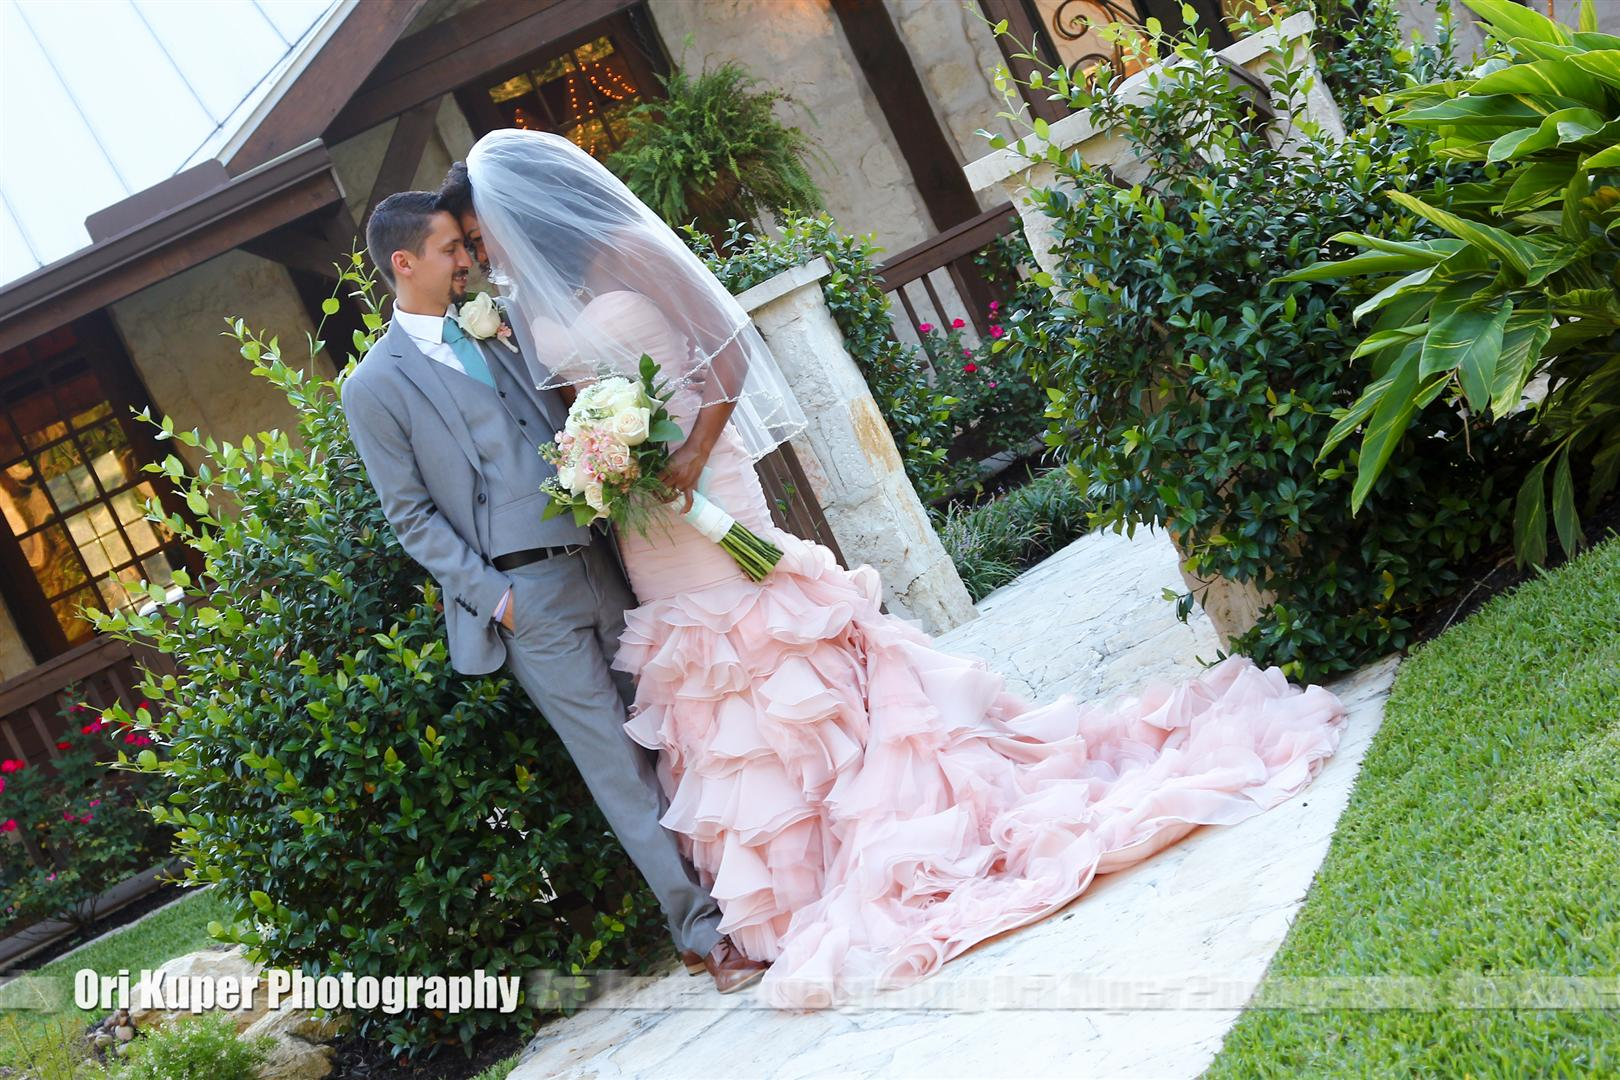 Ori Kuper Photography Weddings Josh Aubrey IMG_4556.jpg